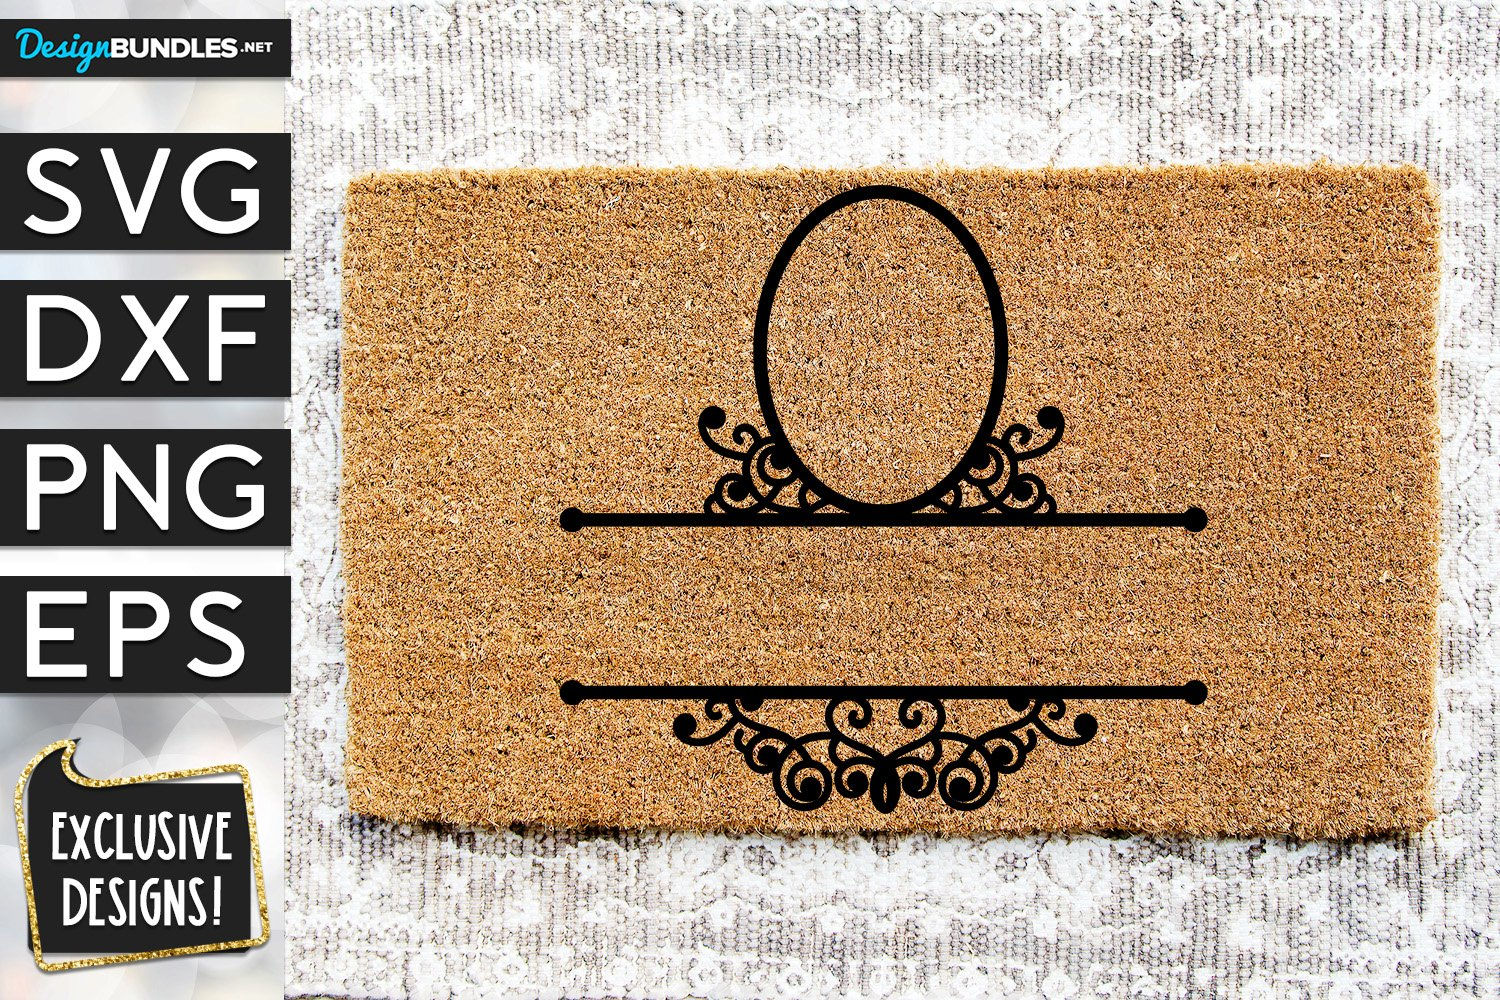 Ornate Welcome Mat Monogram Frame SVG DXF PNG EPS example image 1